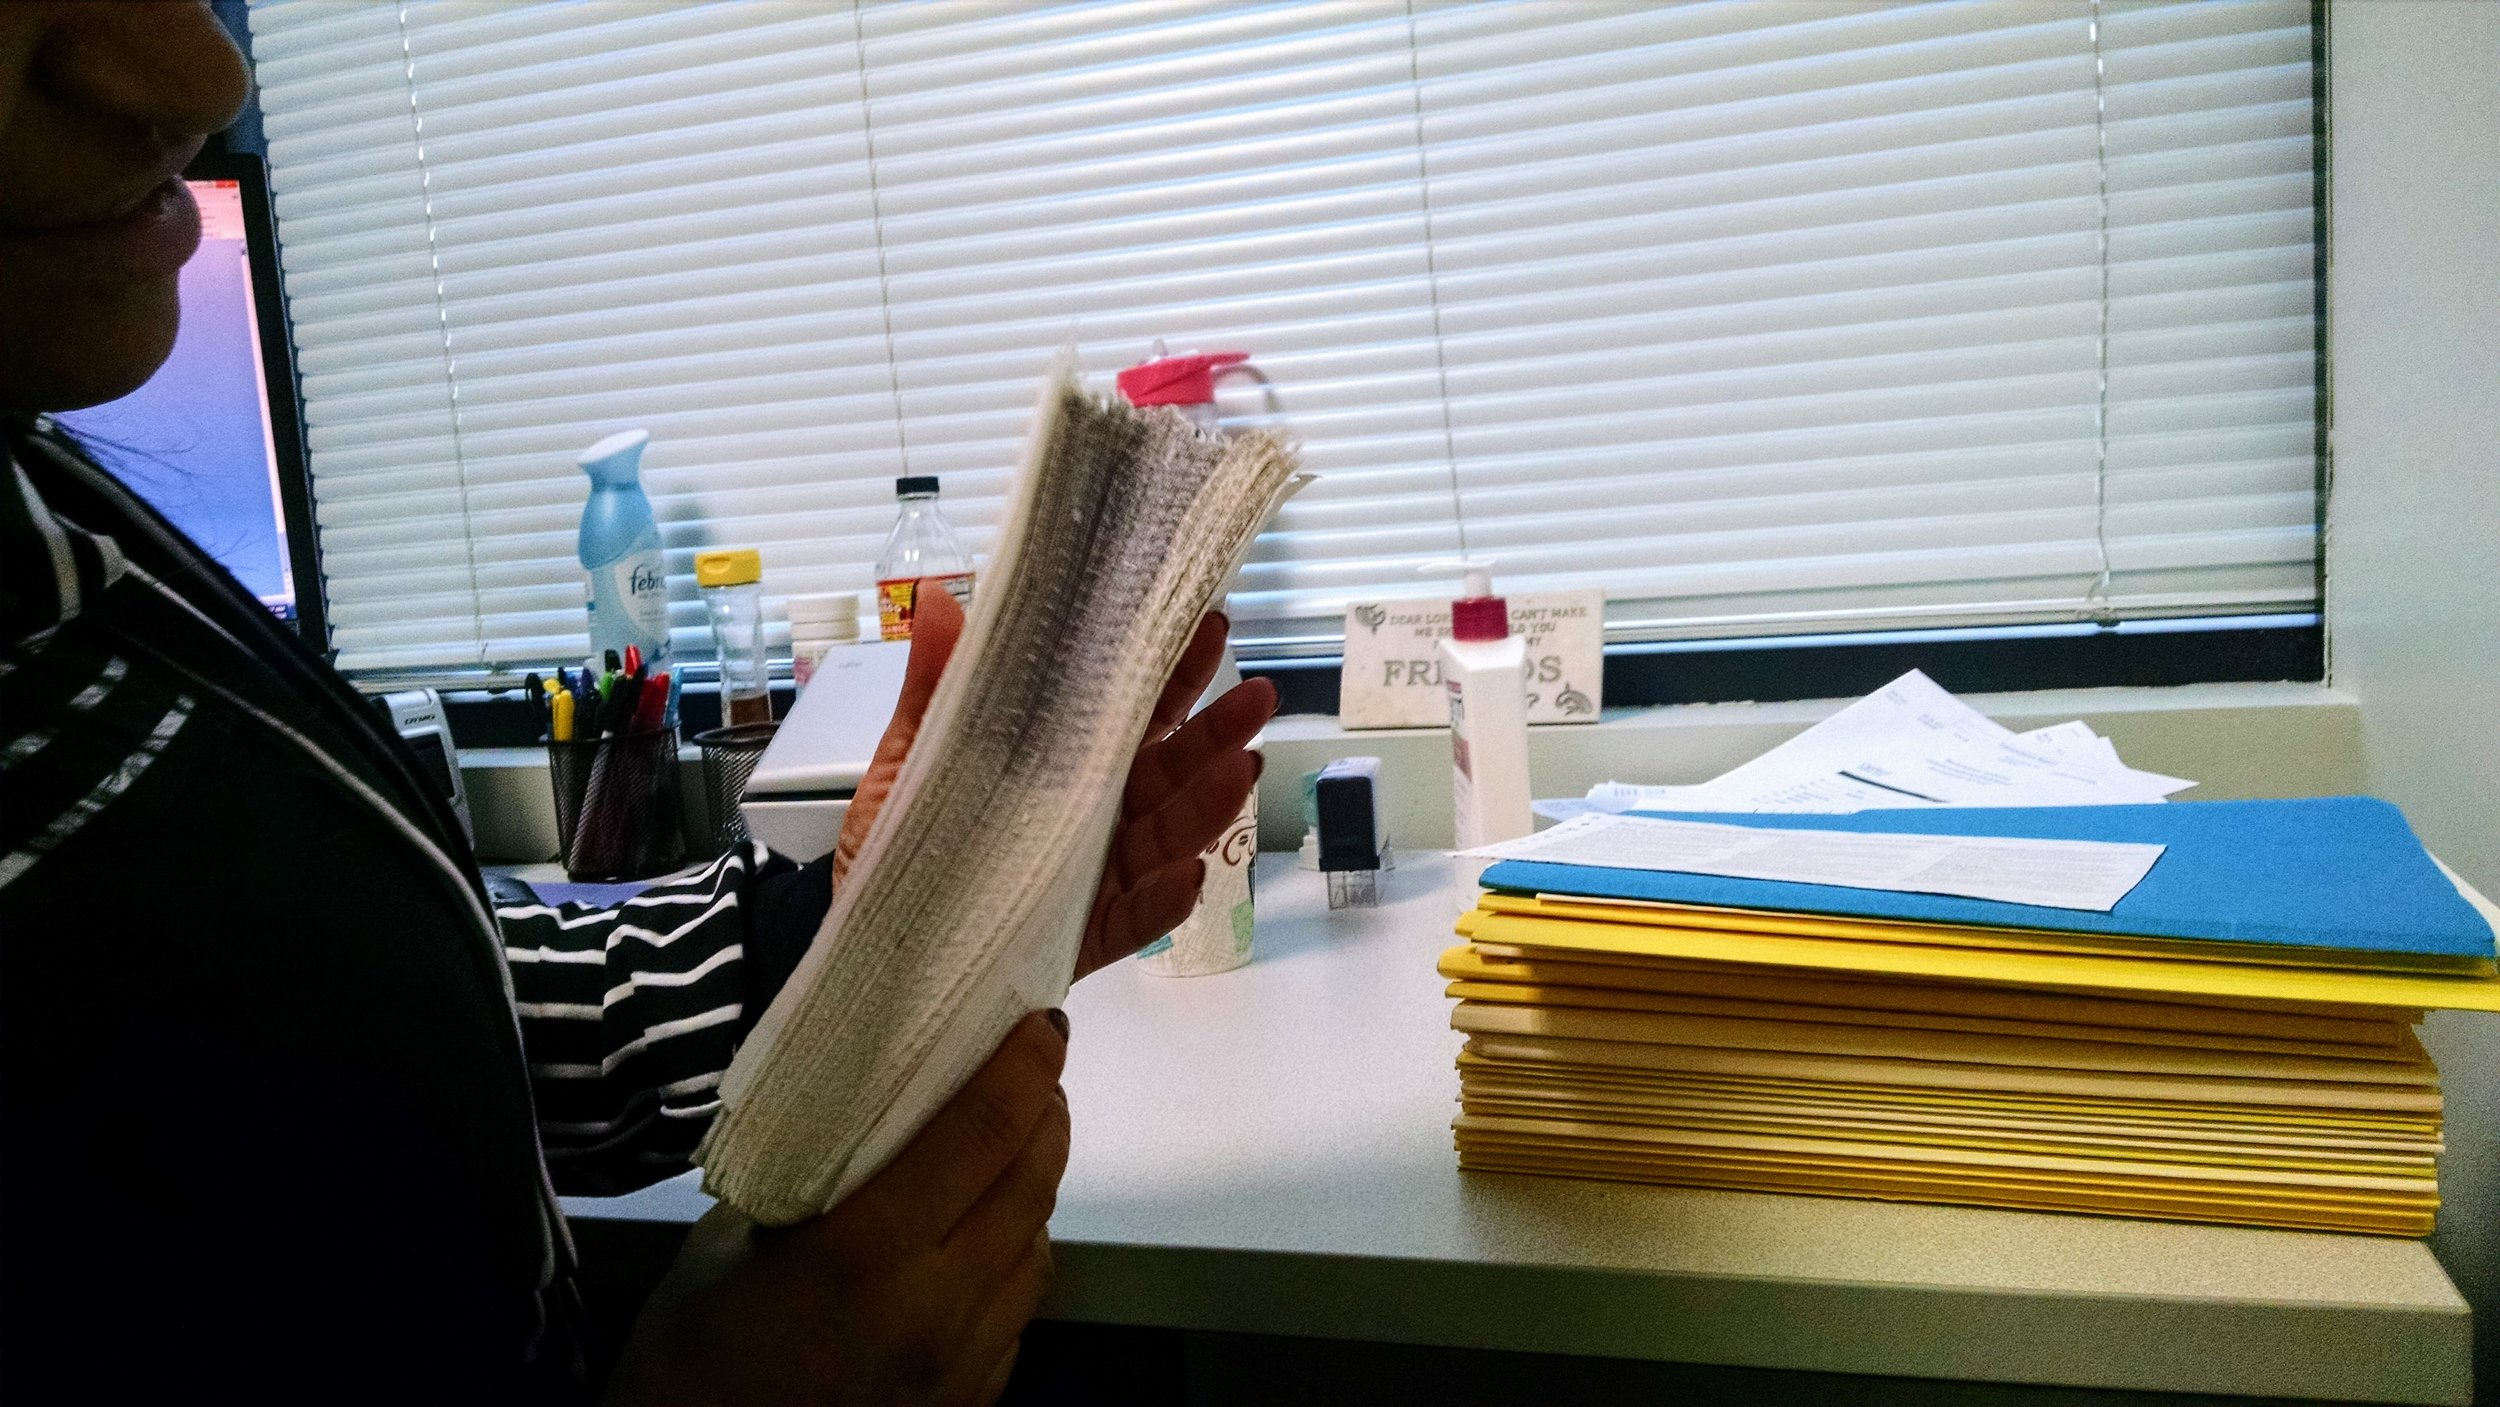 Observing the paper-based credentialing process